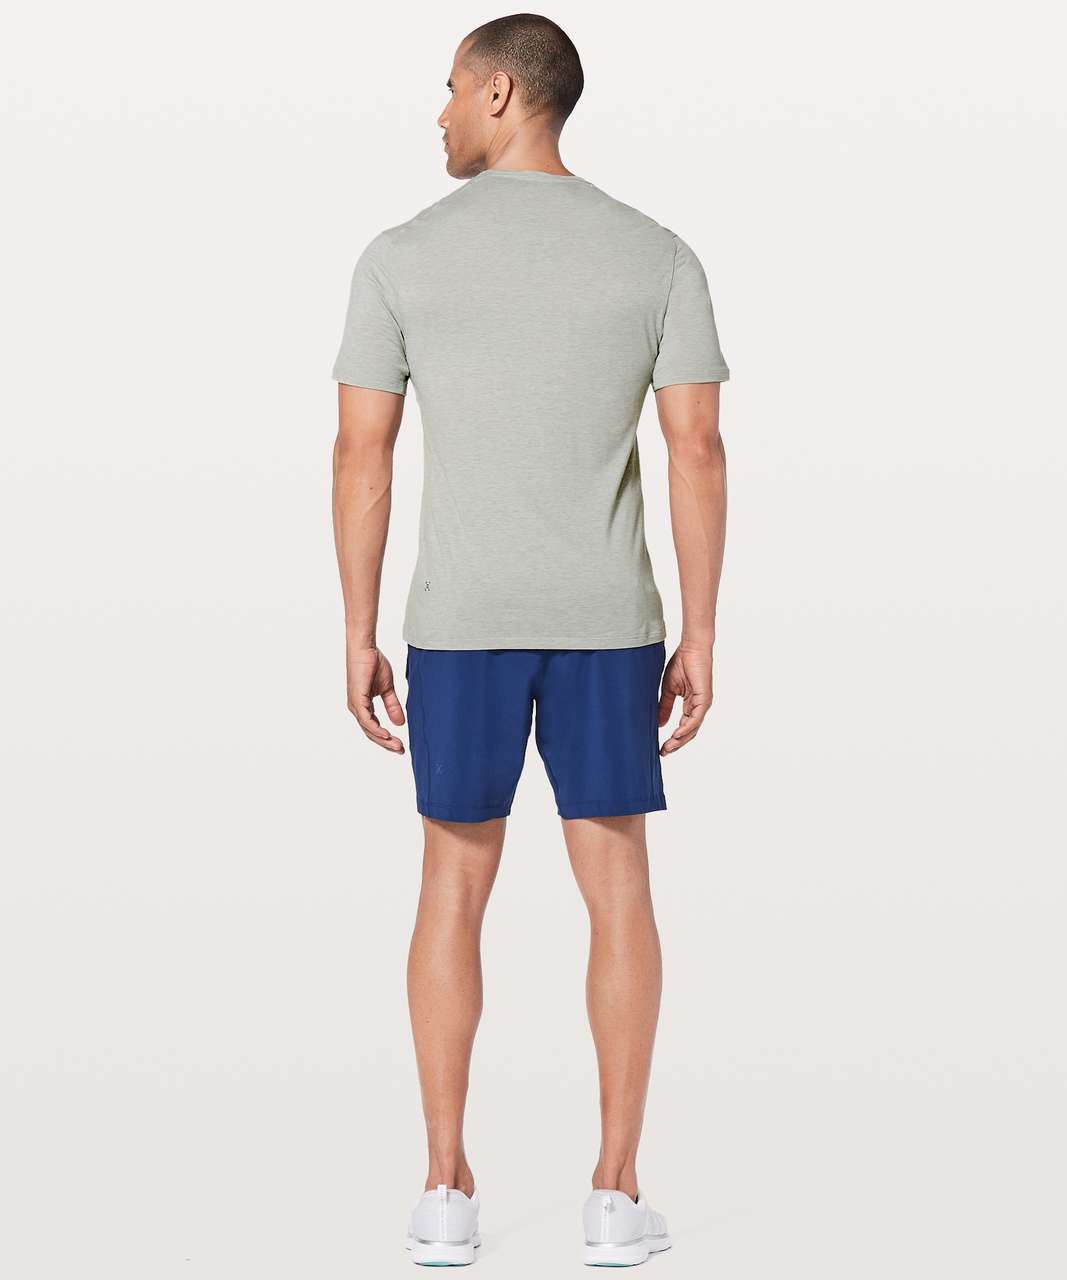 Lululemon Somatic Aero Short Sleeve - Sea Salt